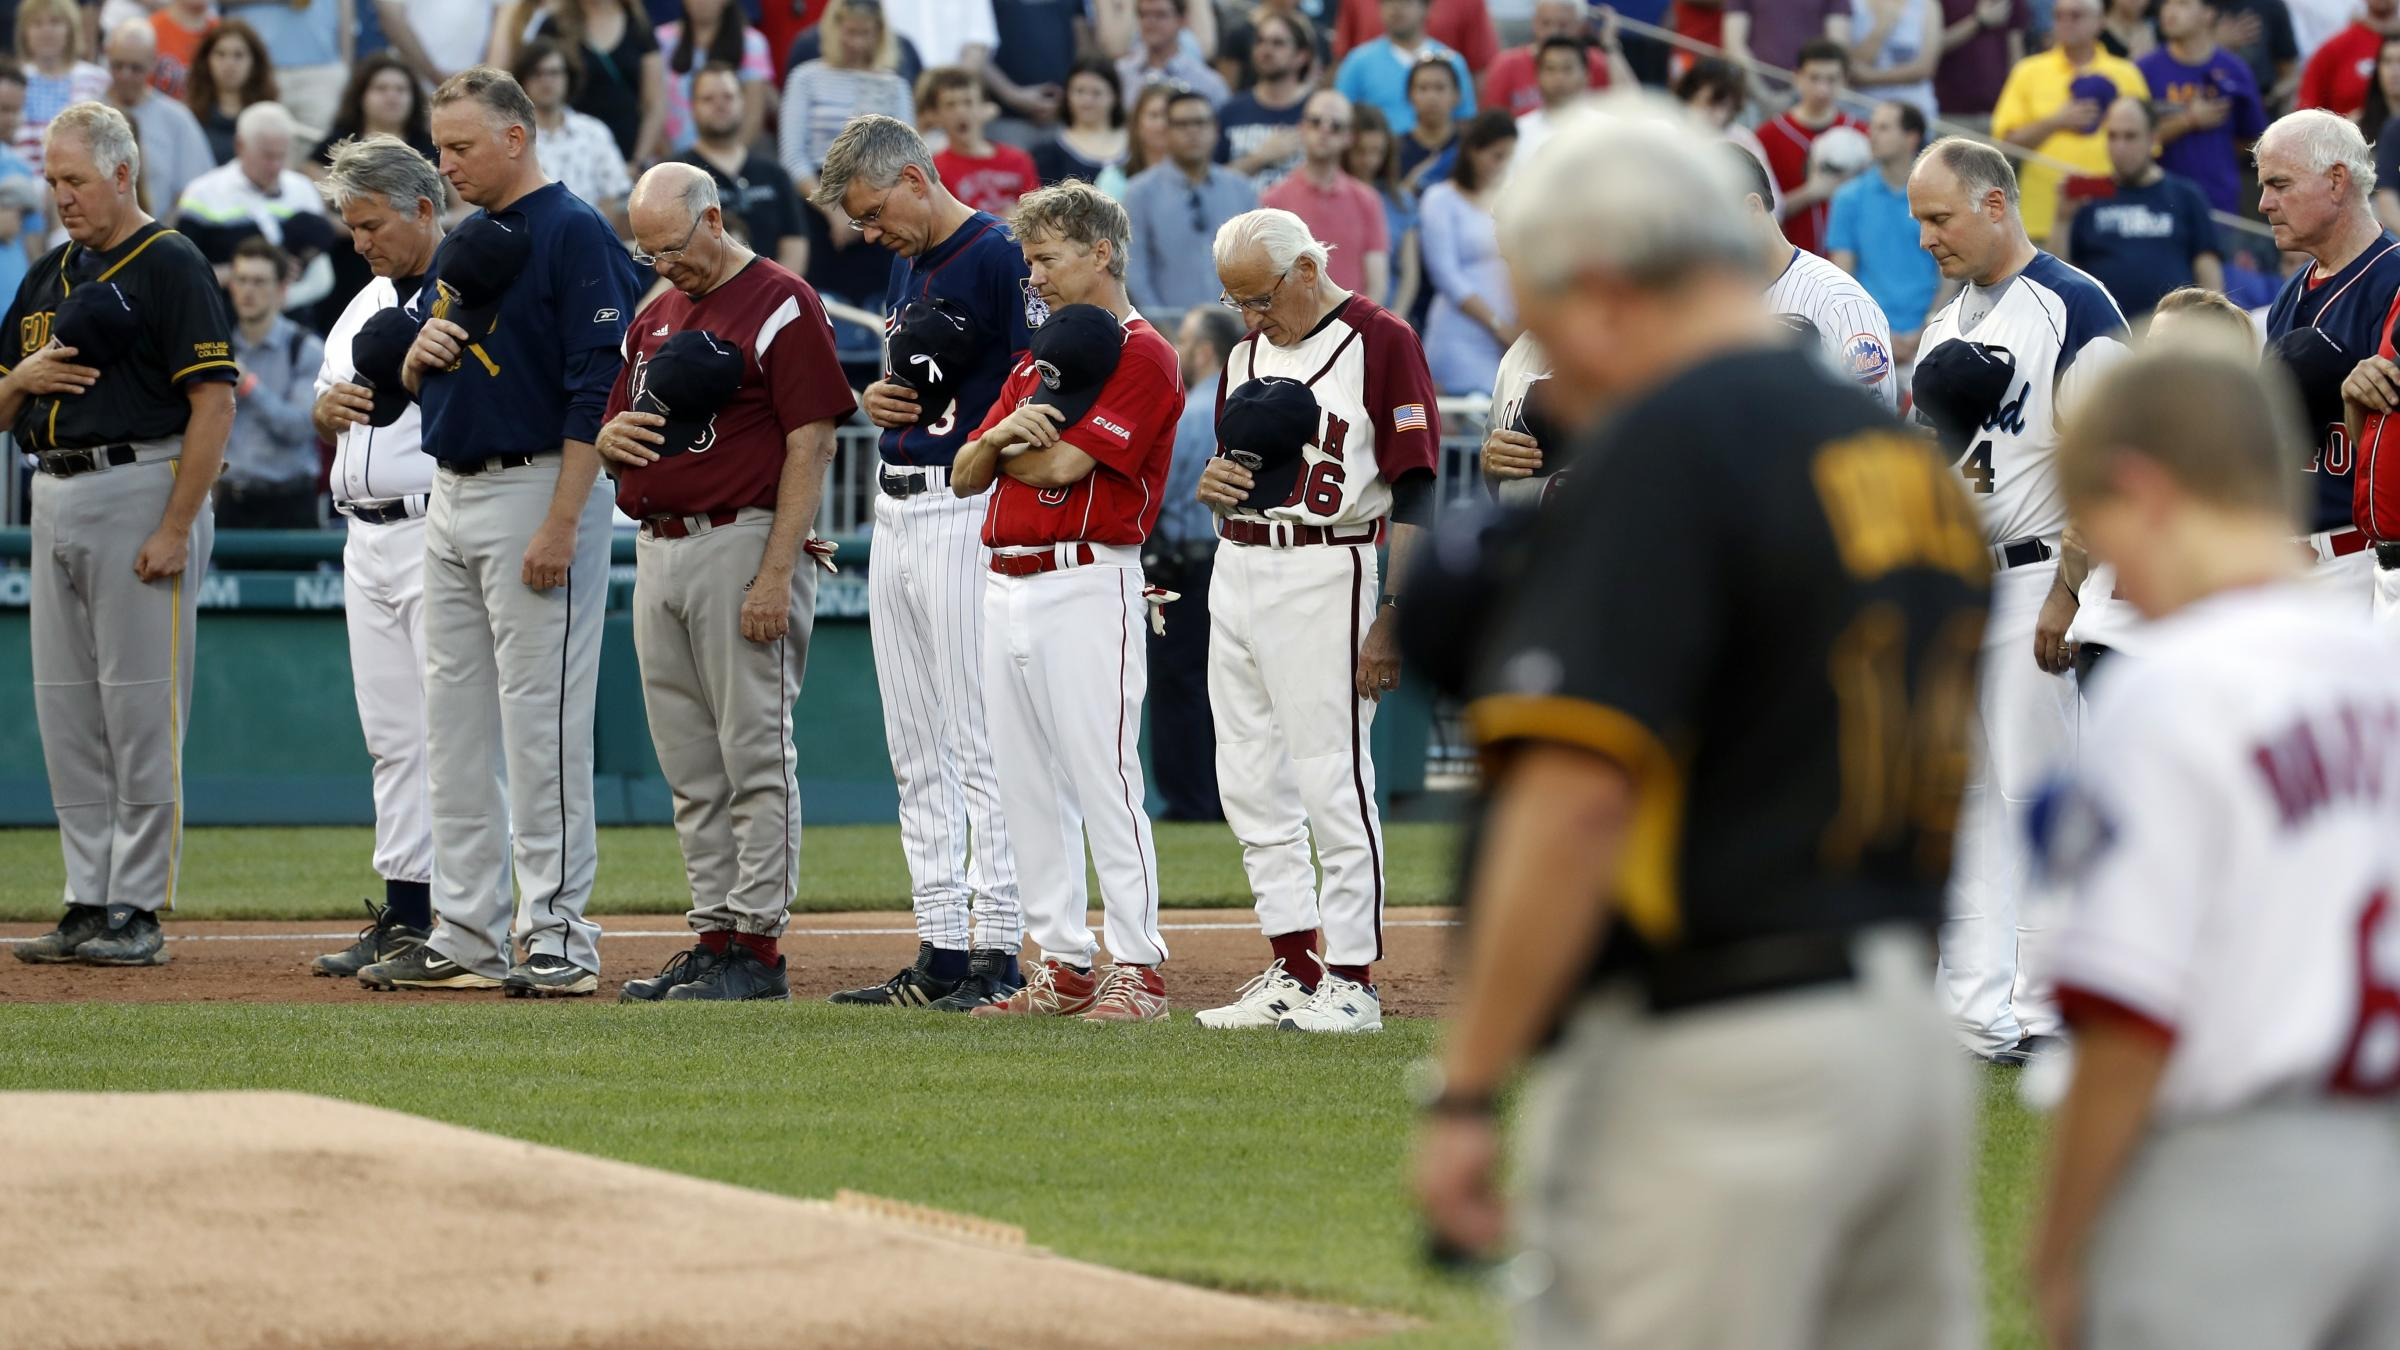 Annual US Congress baseball game brings unity after shooting class=